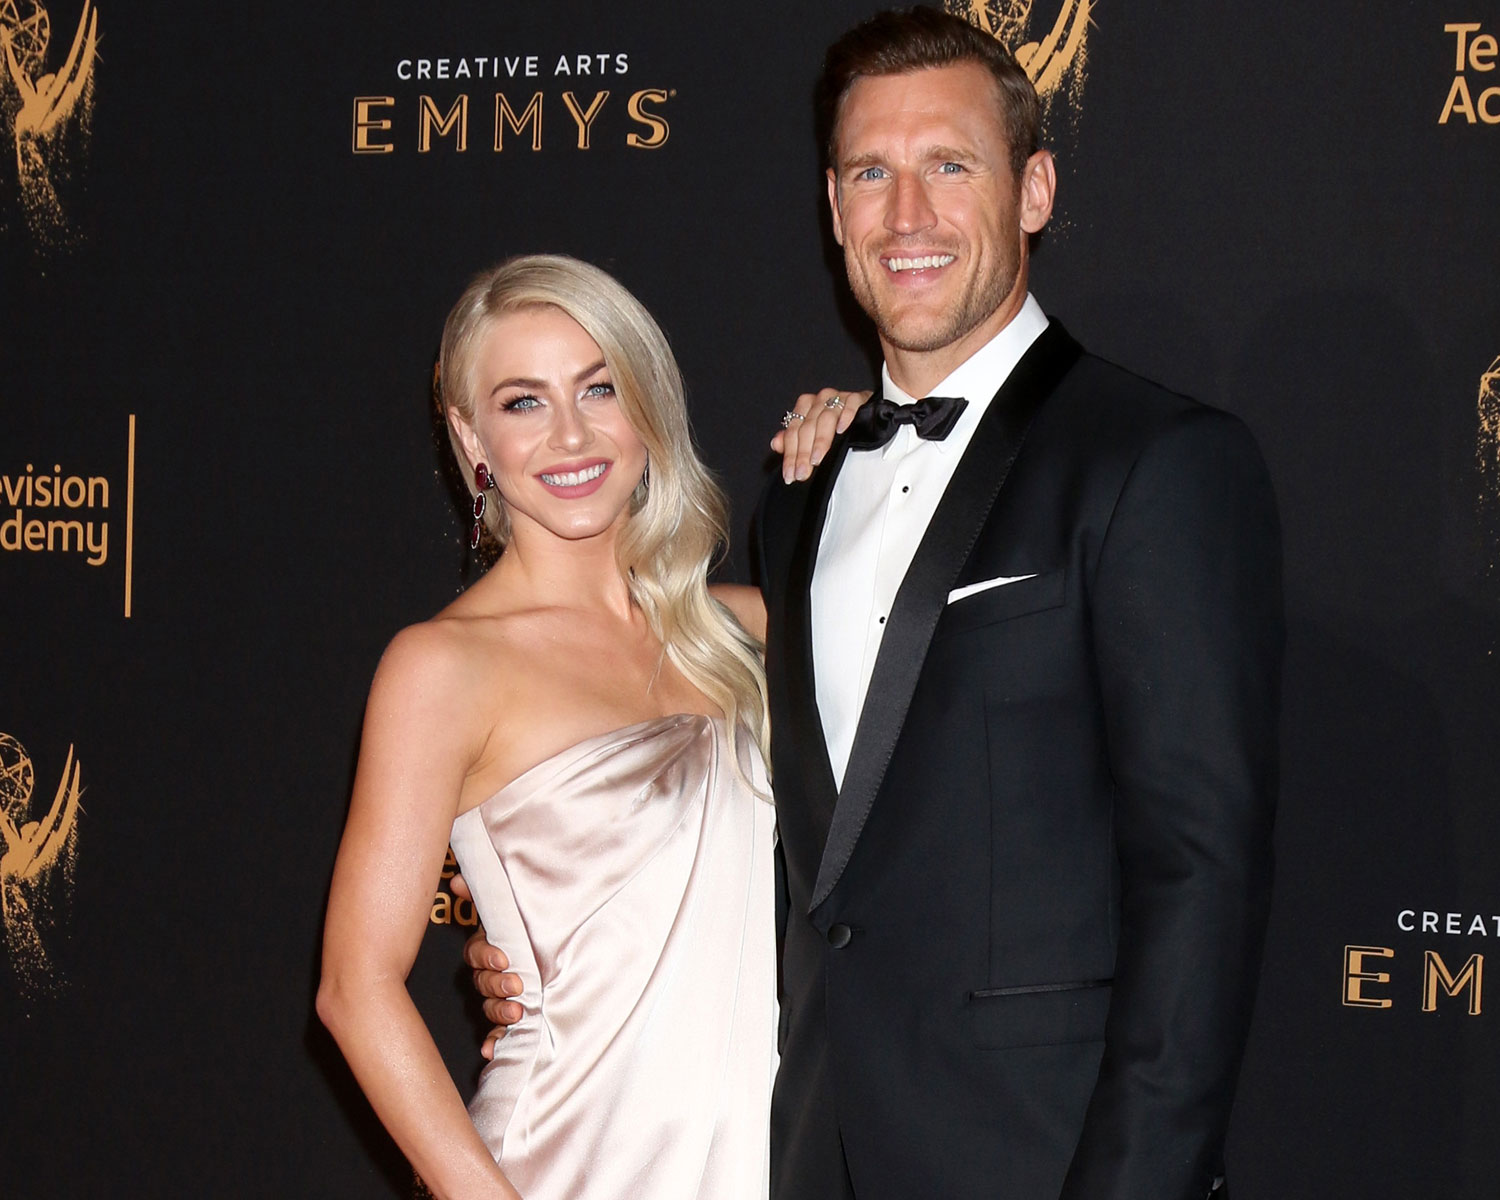 Julianne Hough Remembers The Best Part About Her Wedding